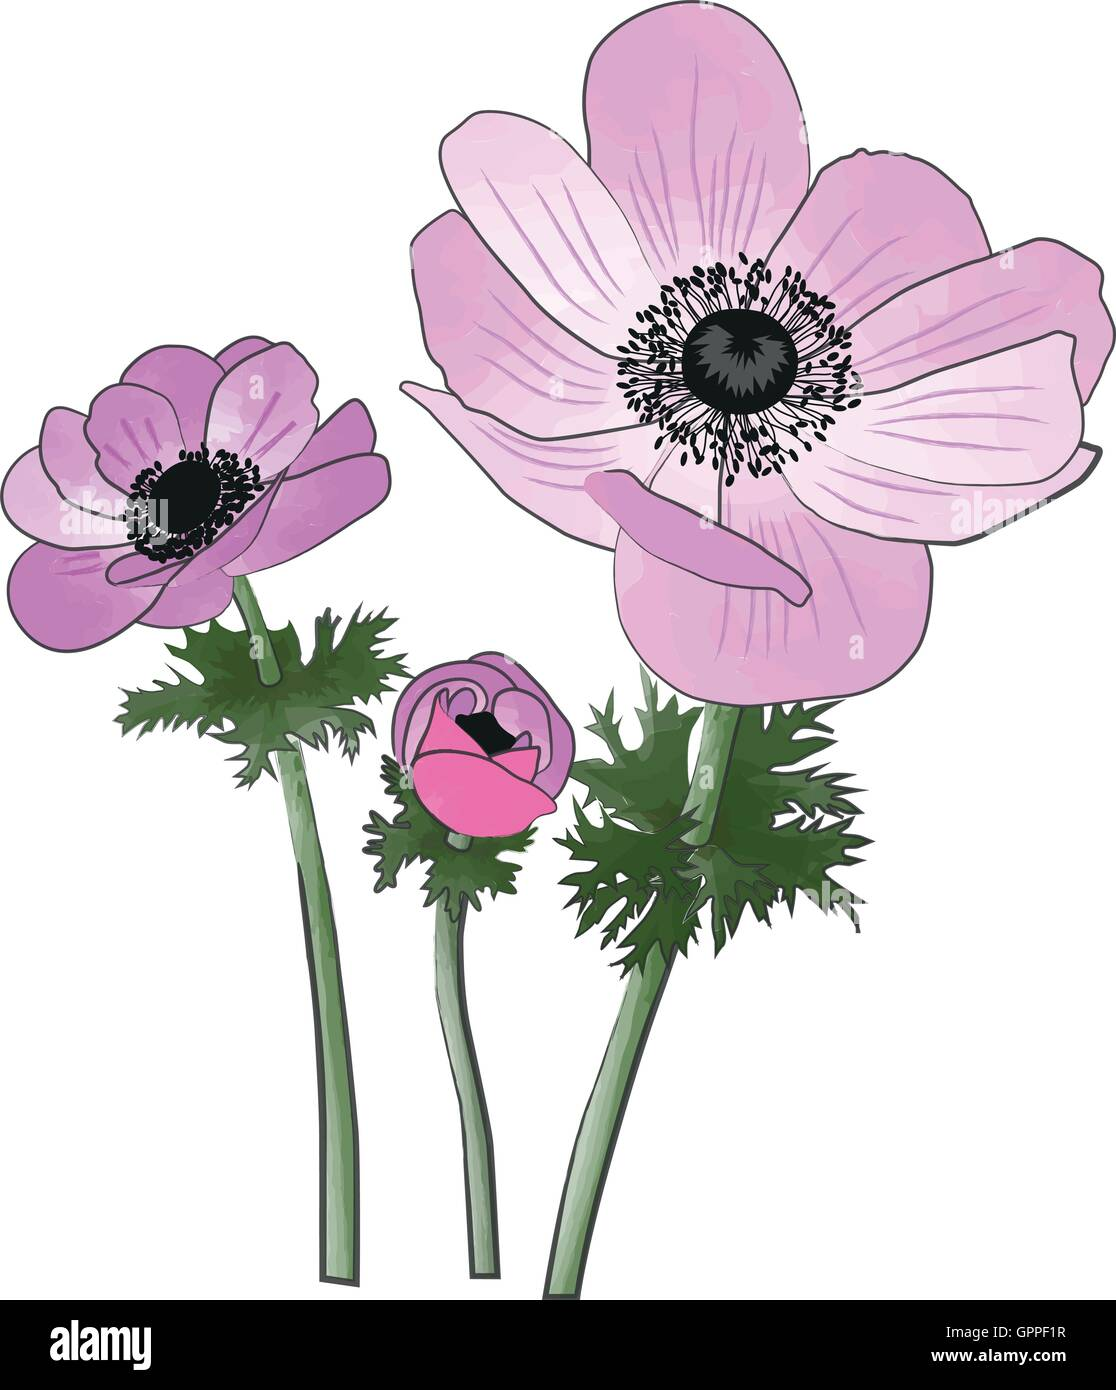 Anemones spring flowers watercolor and ink painting imitation - Stock Vector